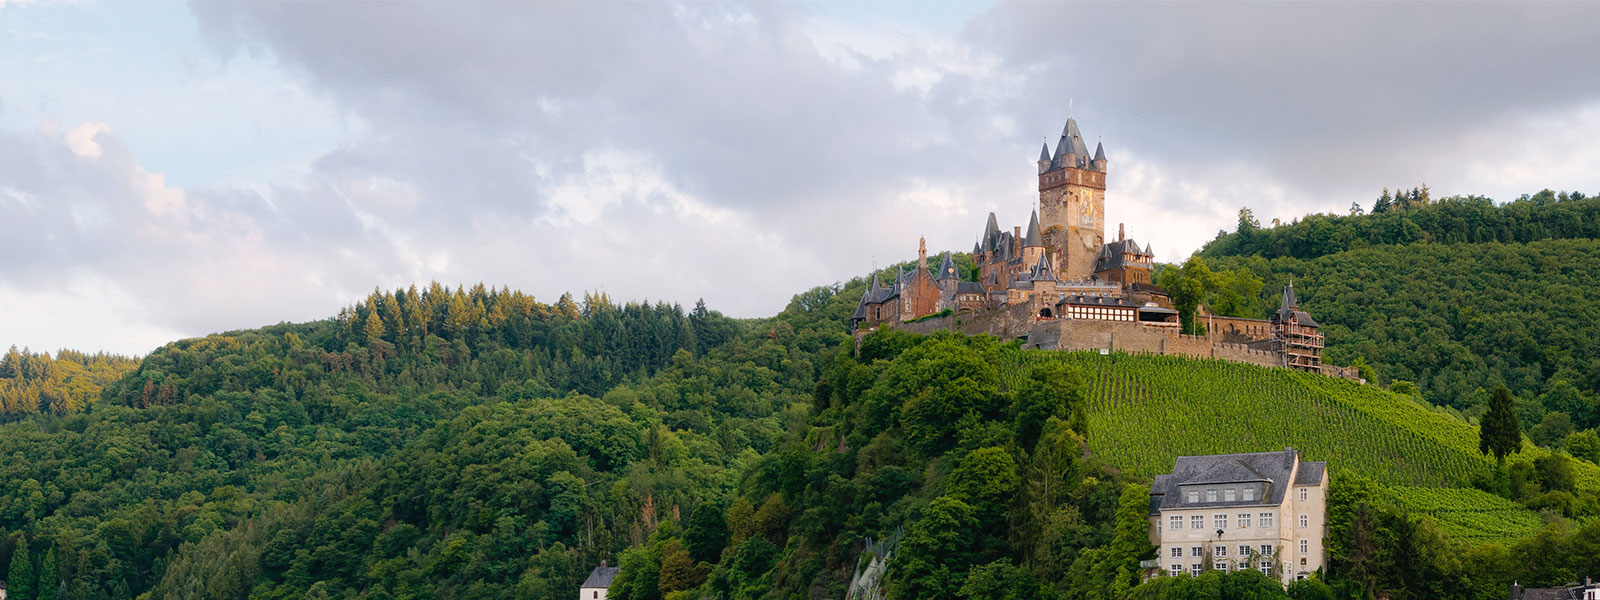 German castle towering over lush green hill